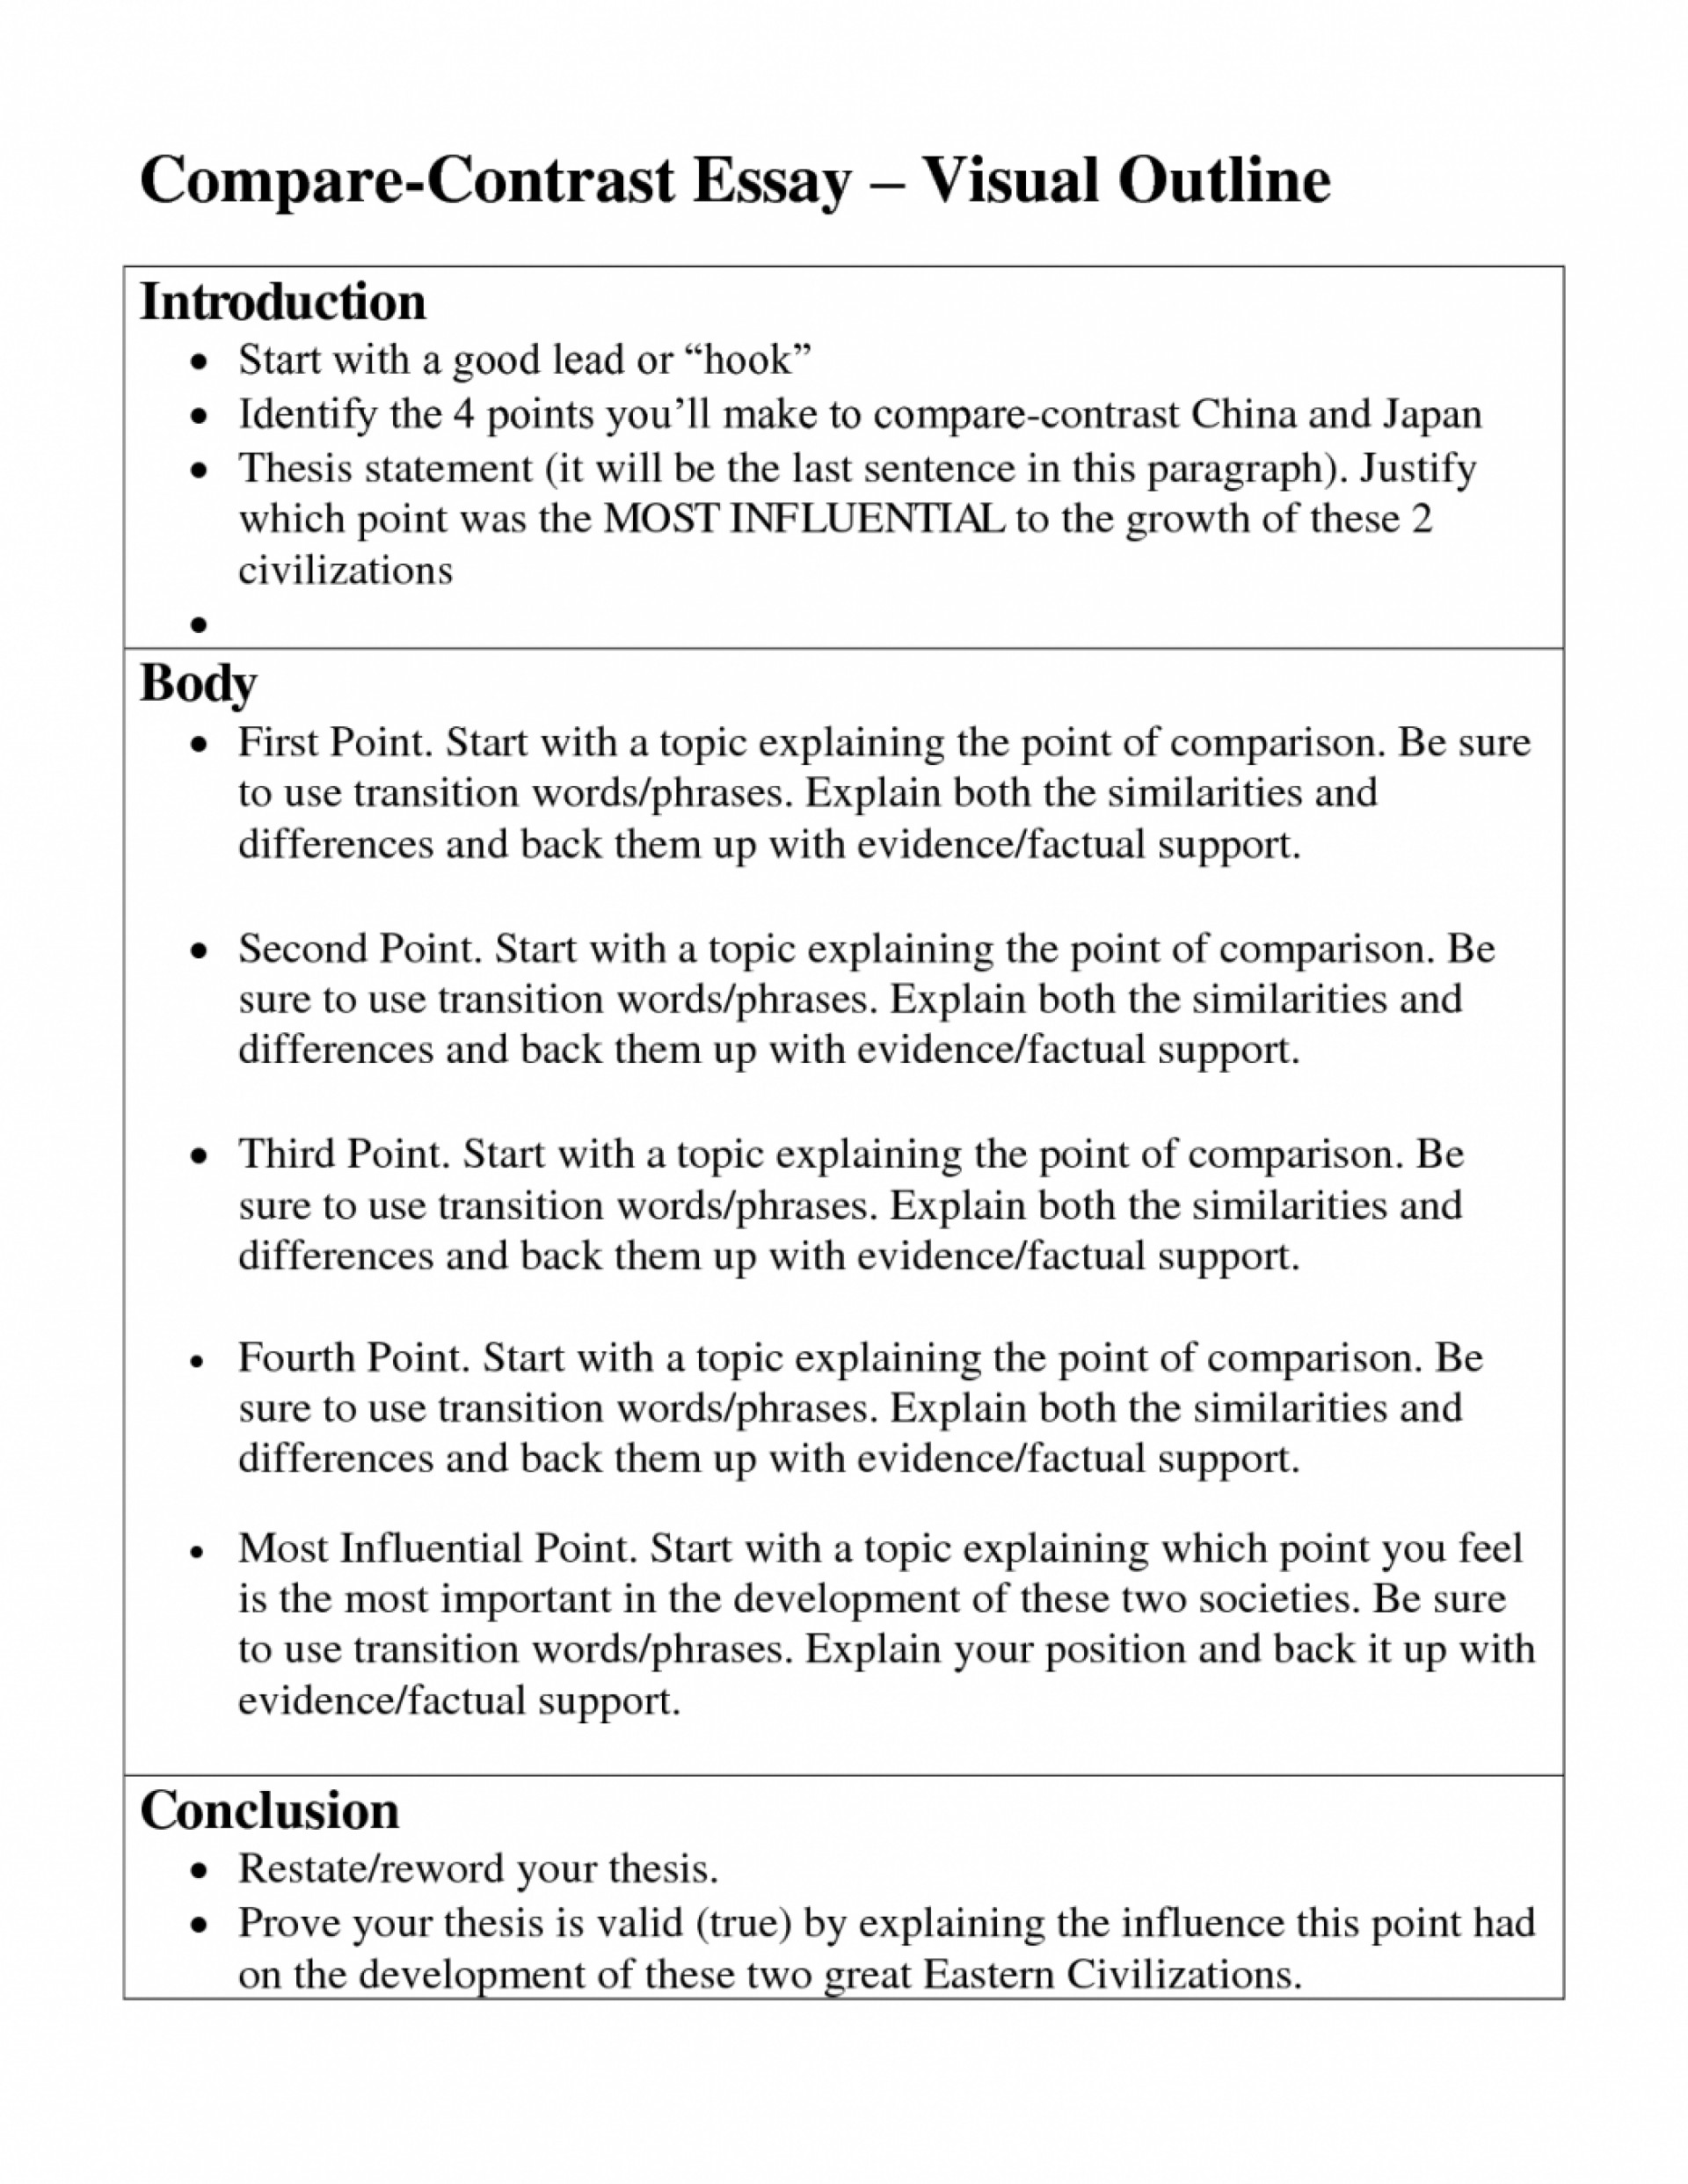 009 Compare And Contrast Essay Topics For High School Students English College Pdf Research Paper 1048x1356 Fantastic Elementary Ielts 1920